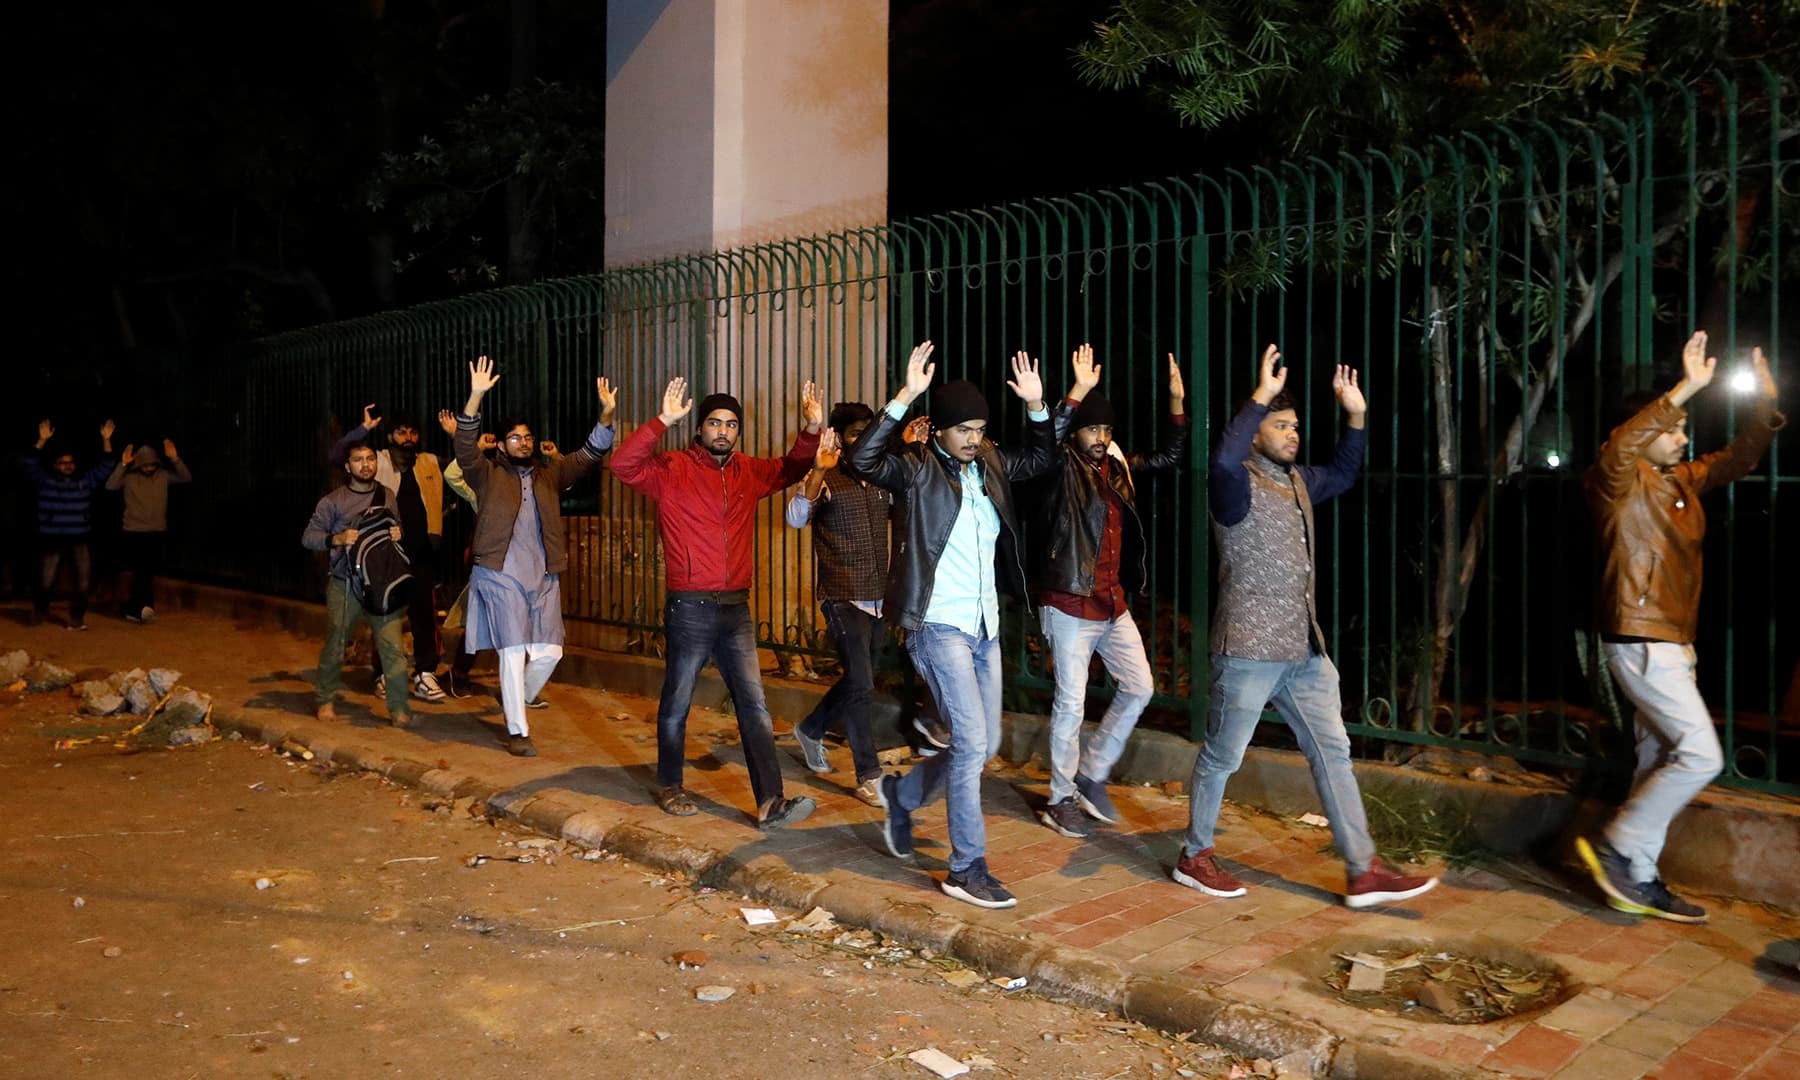 Students raising their hands leave the Jamia Milia University following a protest against a new citizenship law in New Delhi, India on Sunday. — Reuters